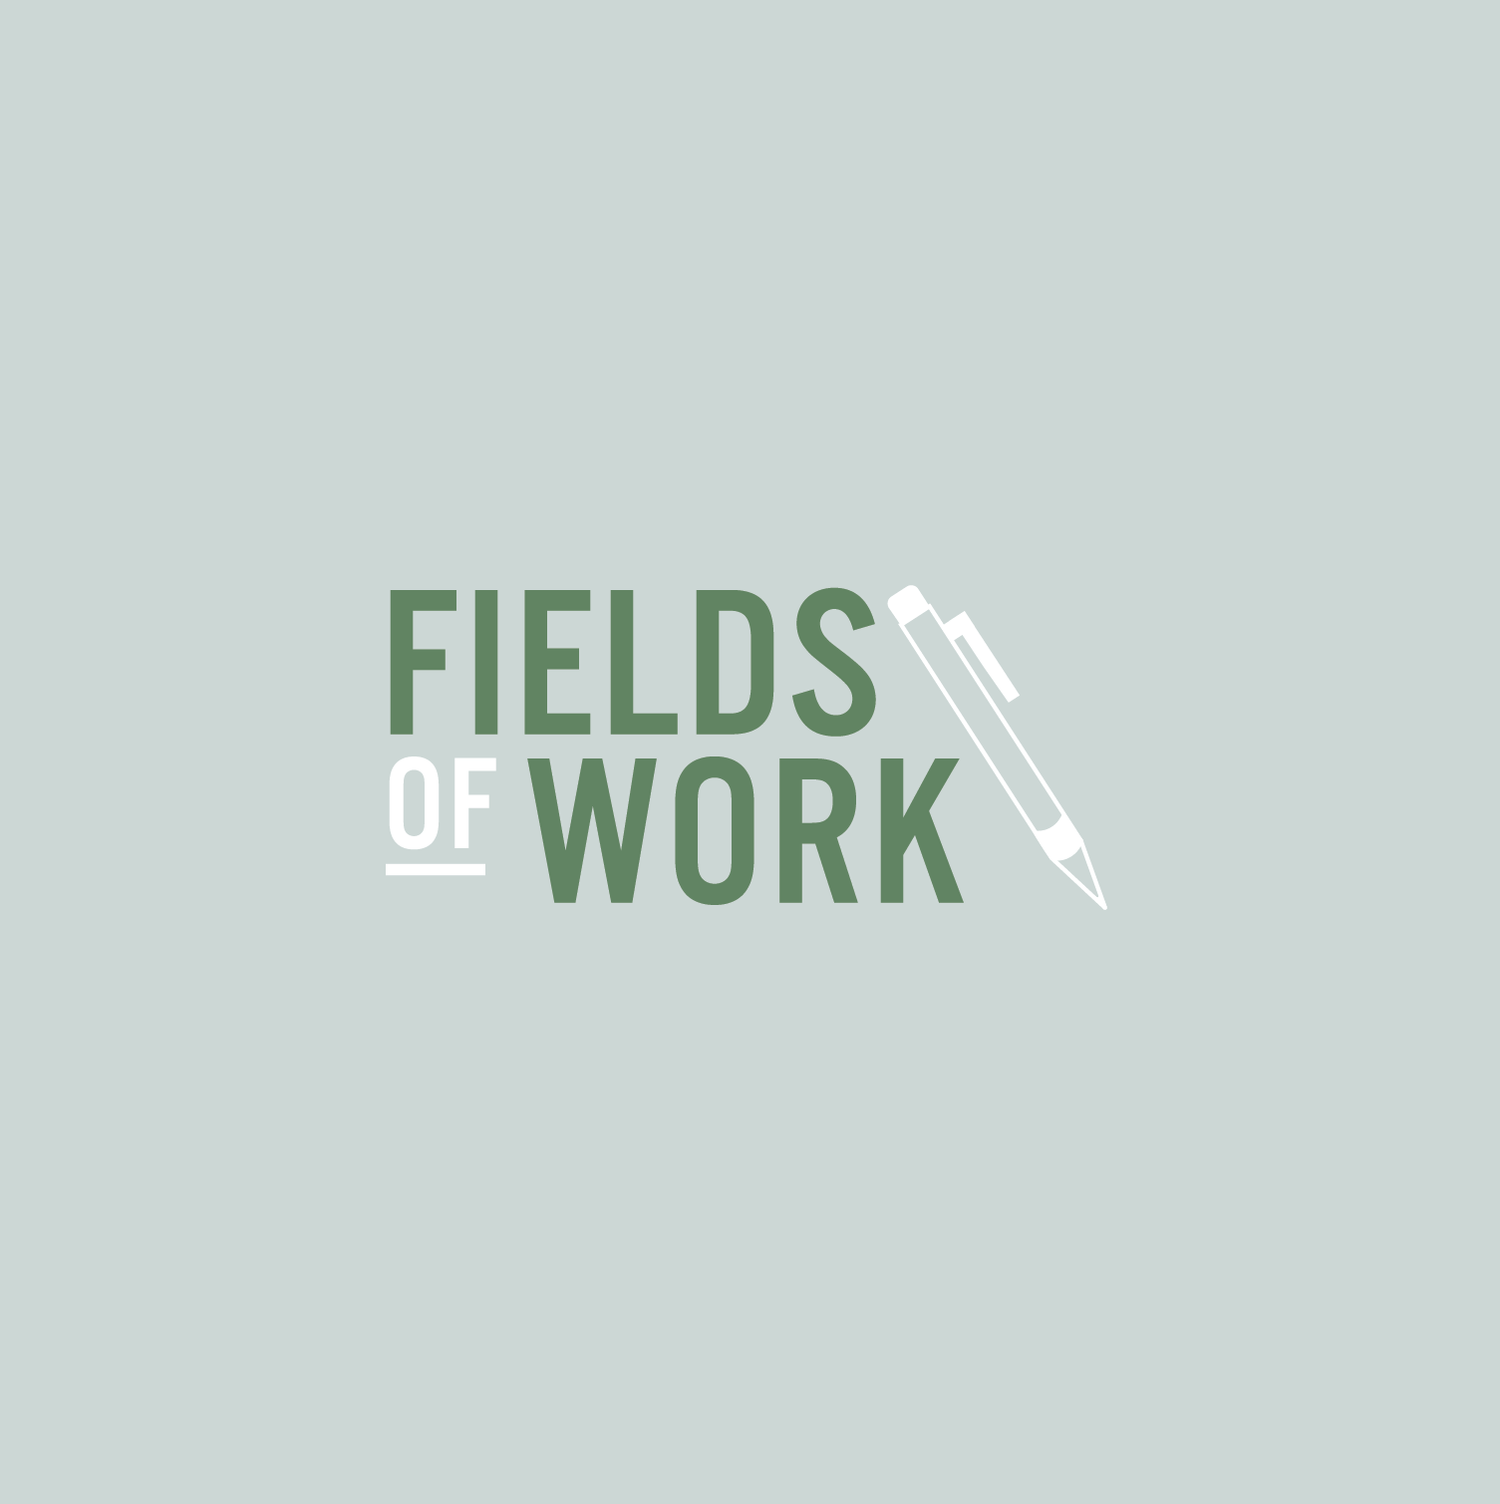 Fields of Work - Sam and Max are brothers. One is the oldest. The other is the youngest. One is a corporate consultant. The other one is an organic farmer. What's up with that? Let's talk about it.A brotherly exploration into the world of work, deliberate attention, and living a meaningful life.